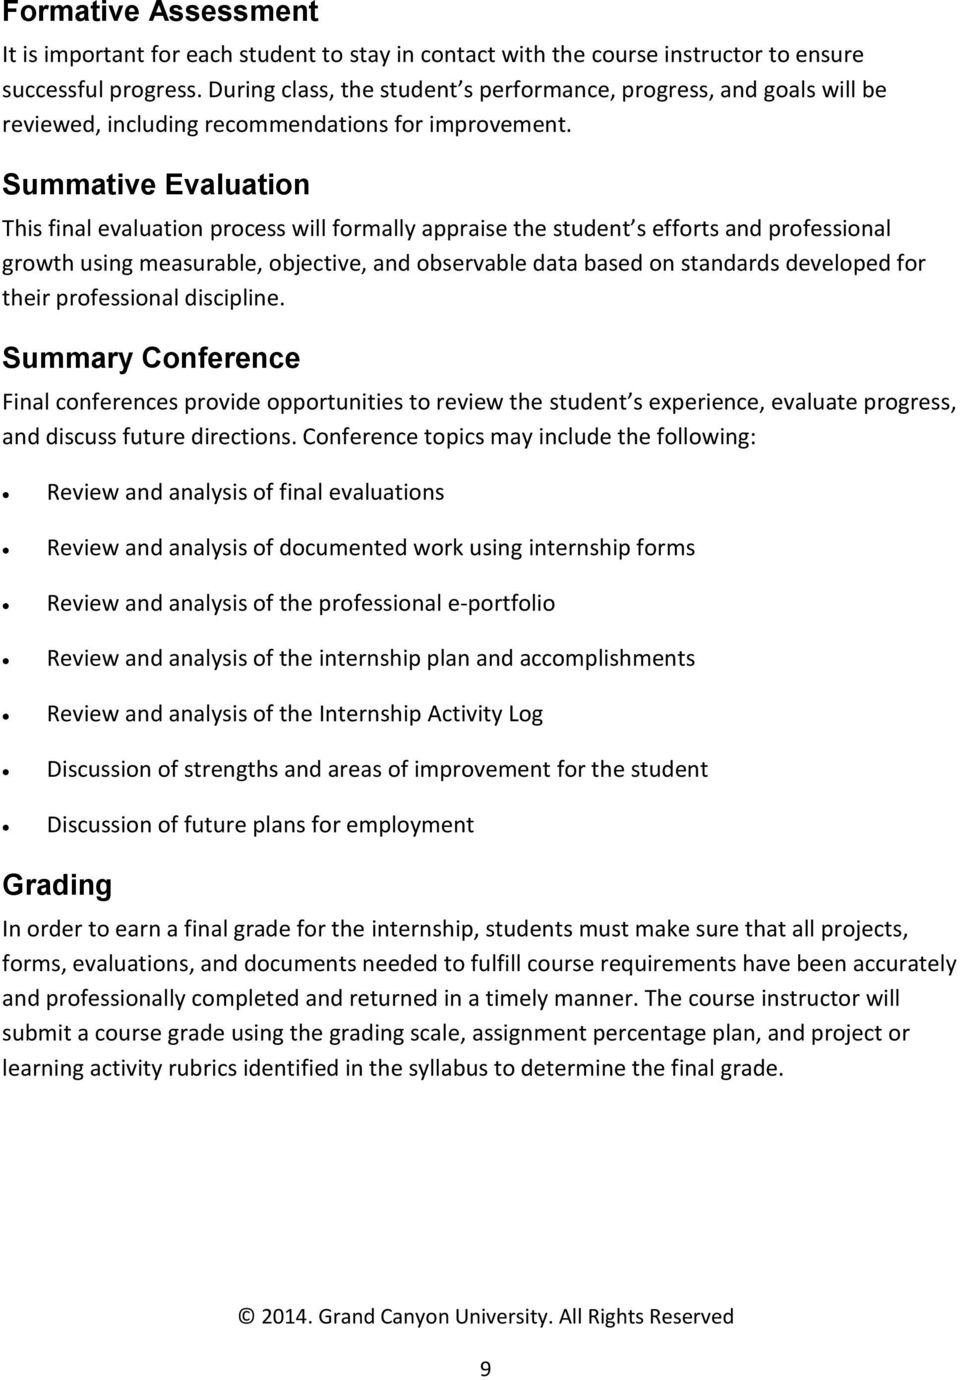 Summative Evaluation This final evaluation process will formally appraise the student s efforts and professional growth using measurable, objective, and observable data based on standards developed